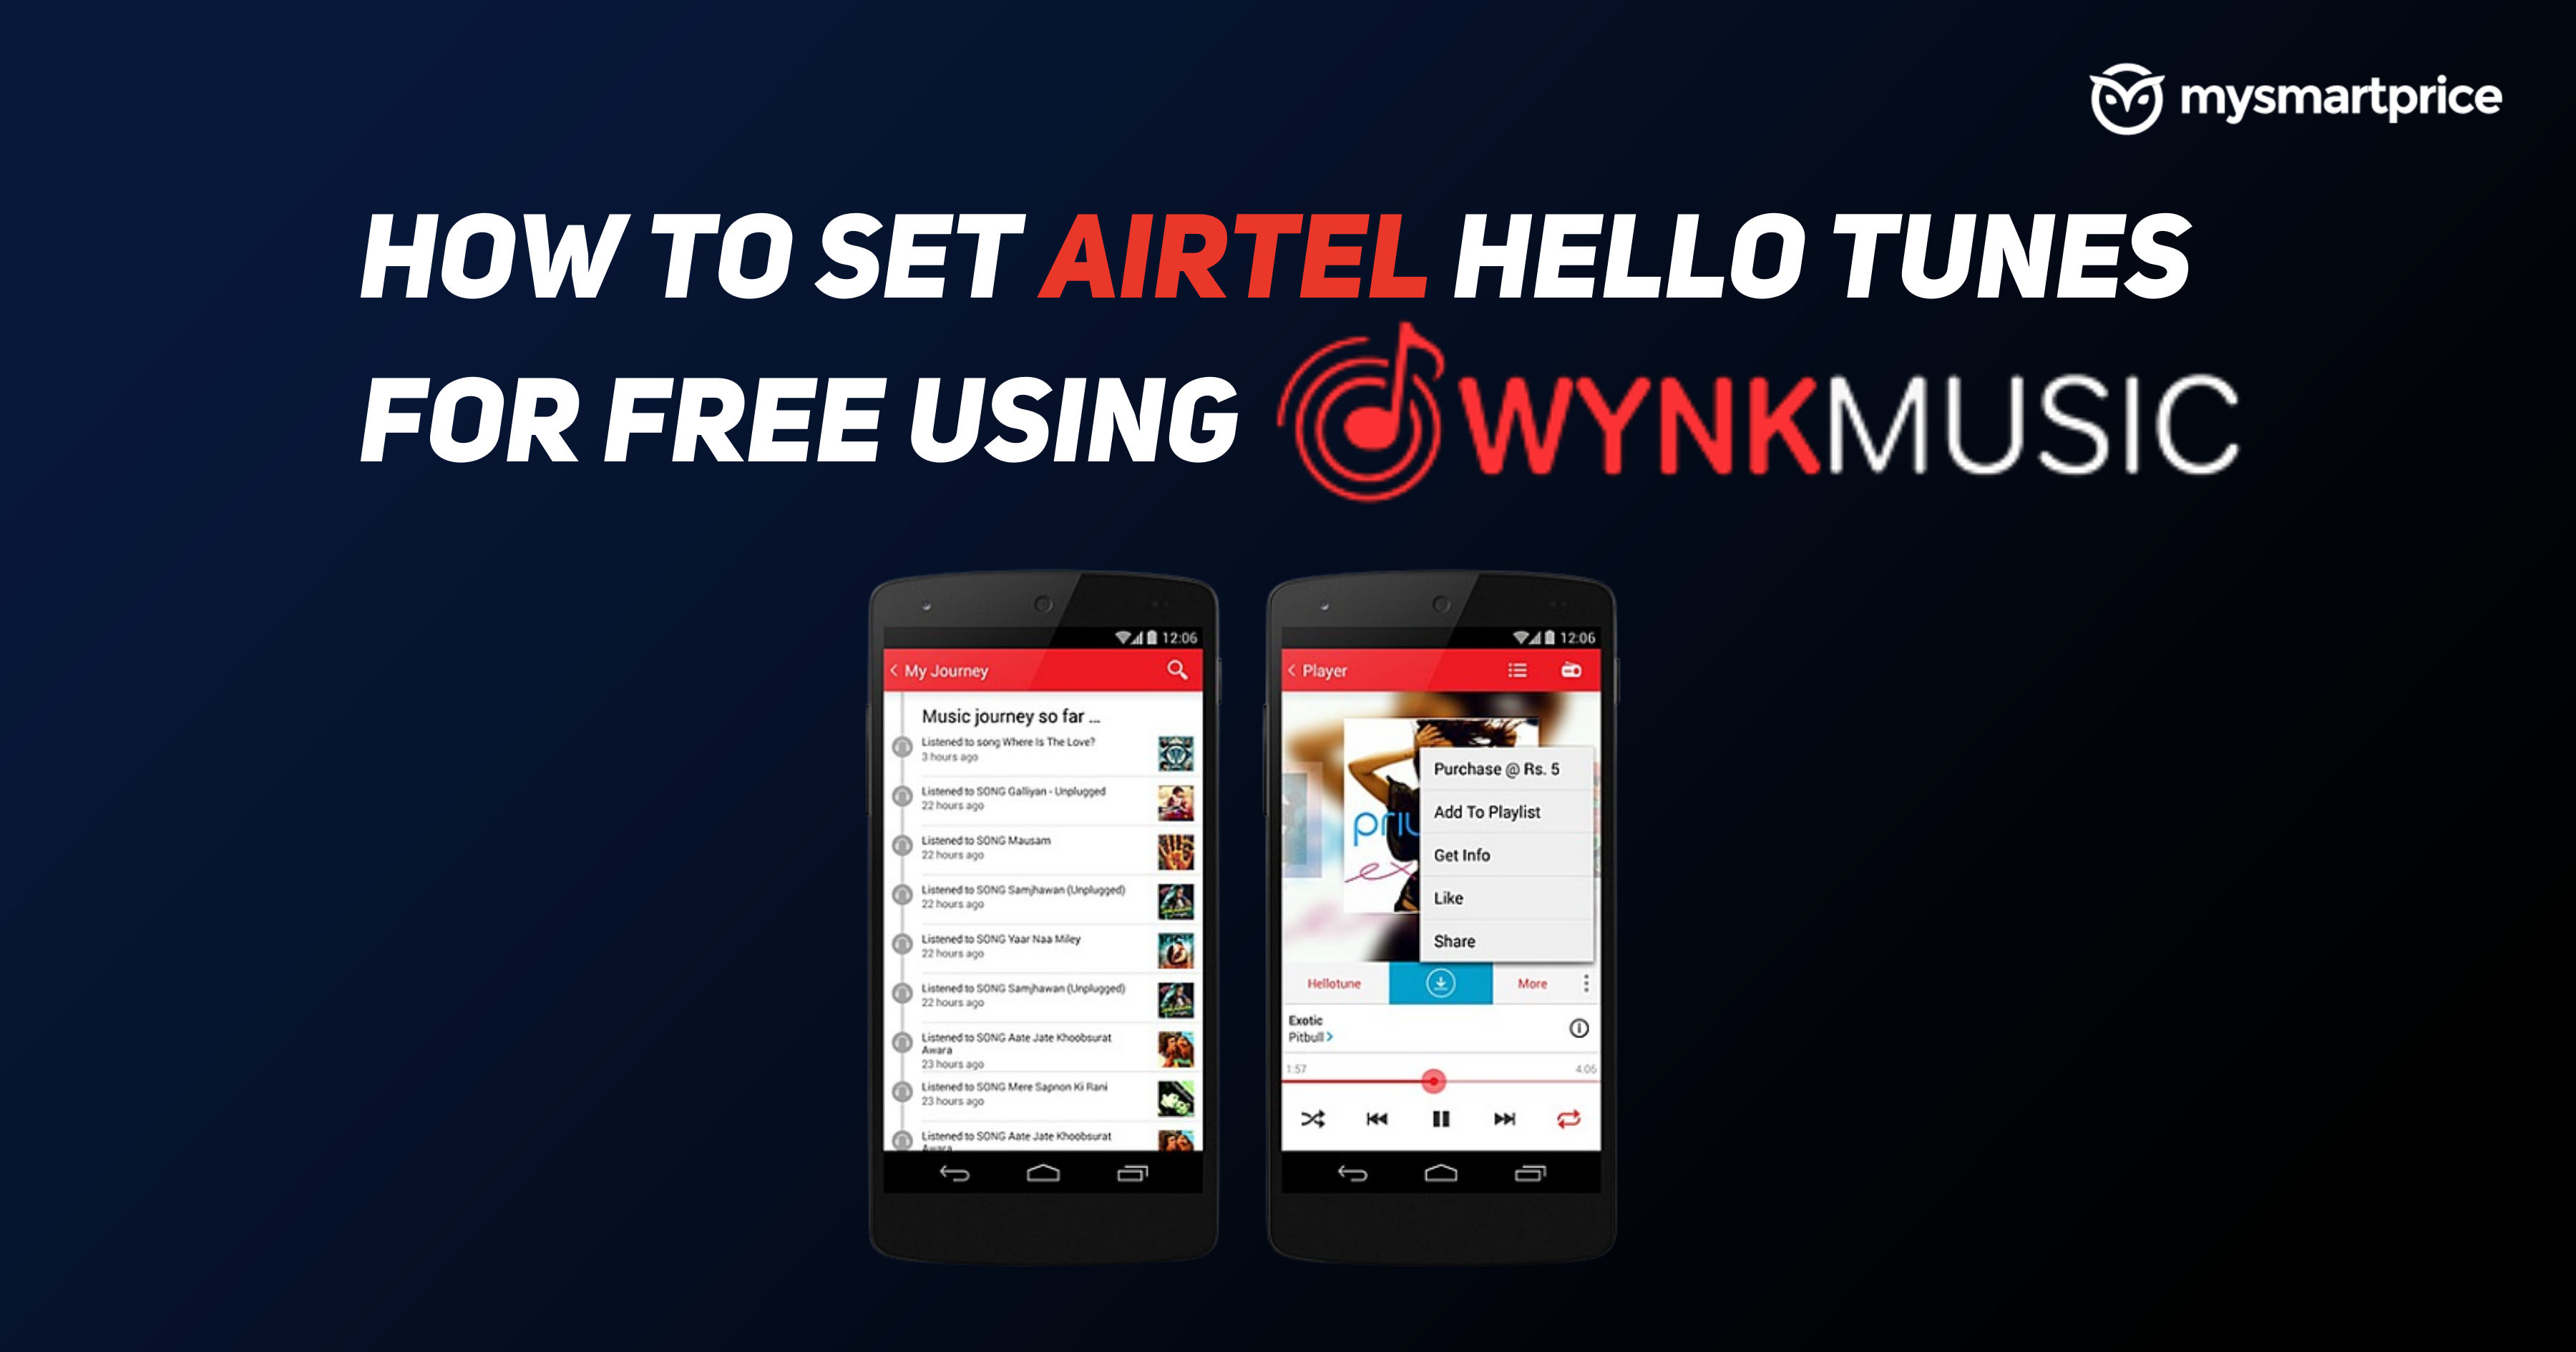 How to Set Airtel Hello Tunes for Free Using